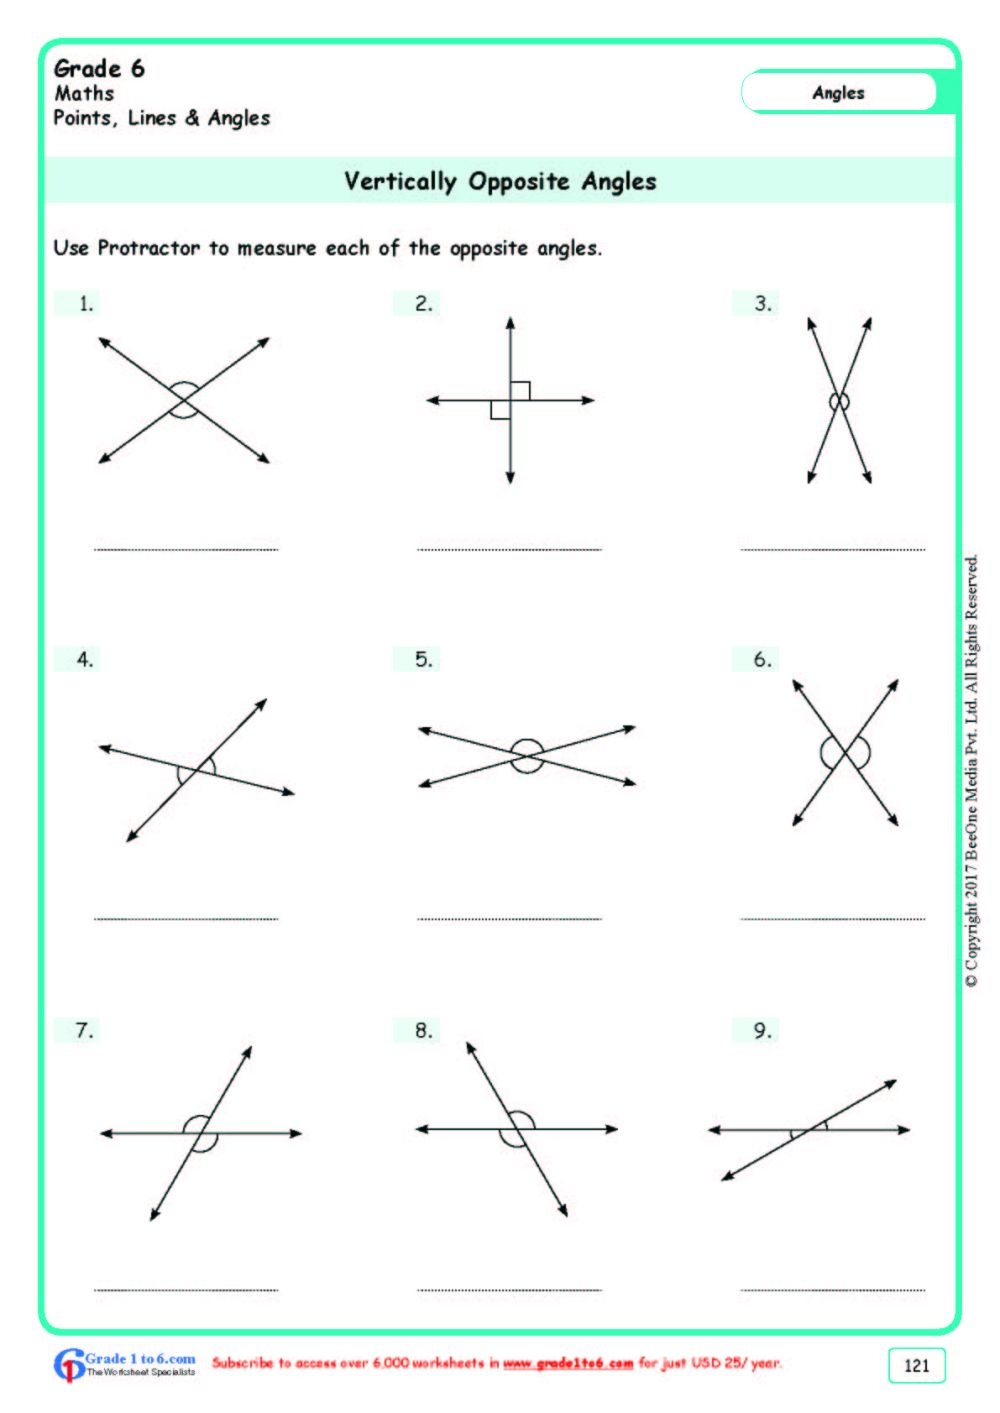 medium resolution of Grade 6 Measuring Angles Worksheets www.grade1to6.com